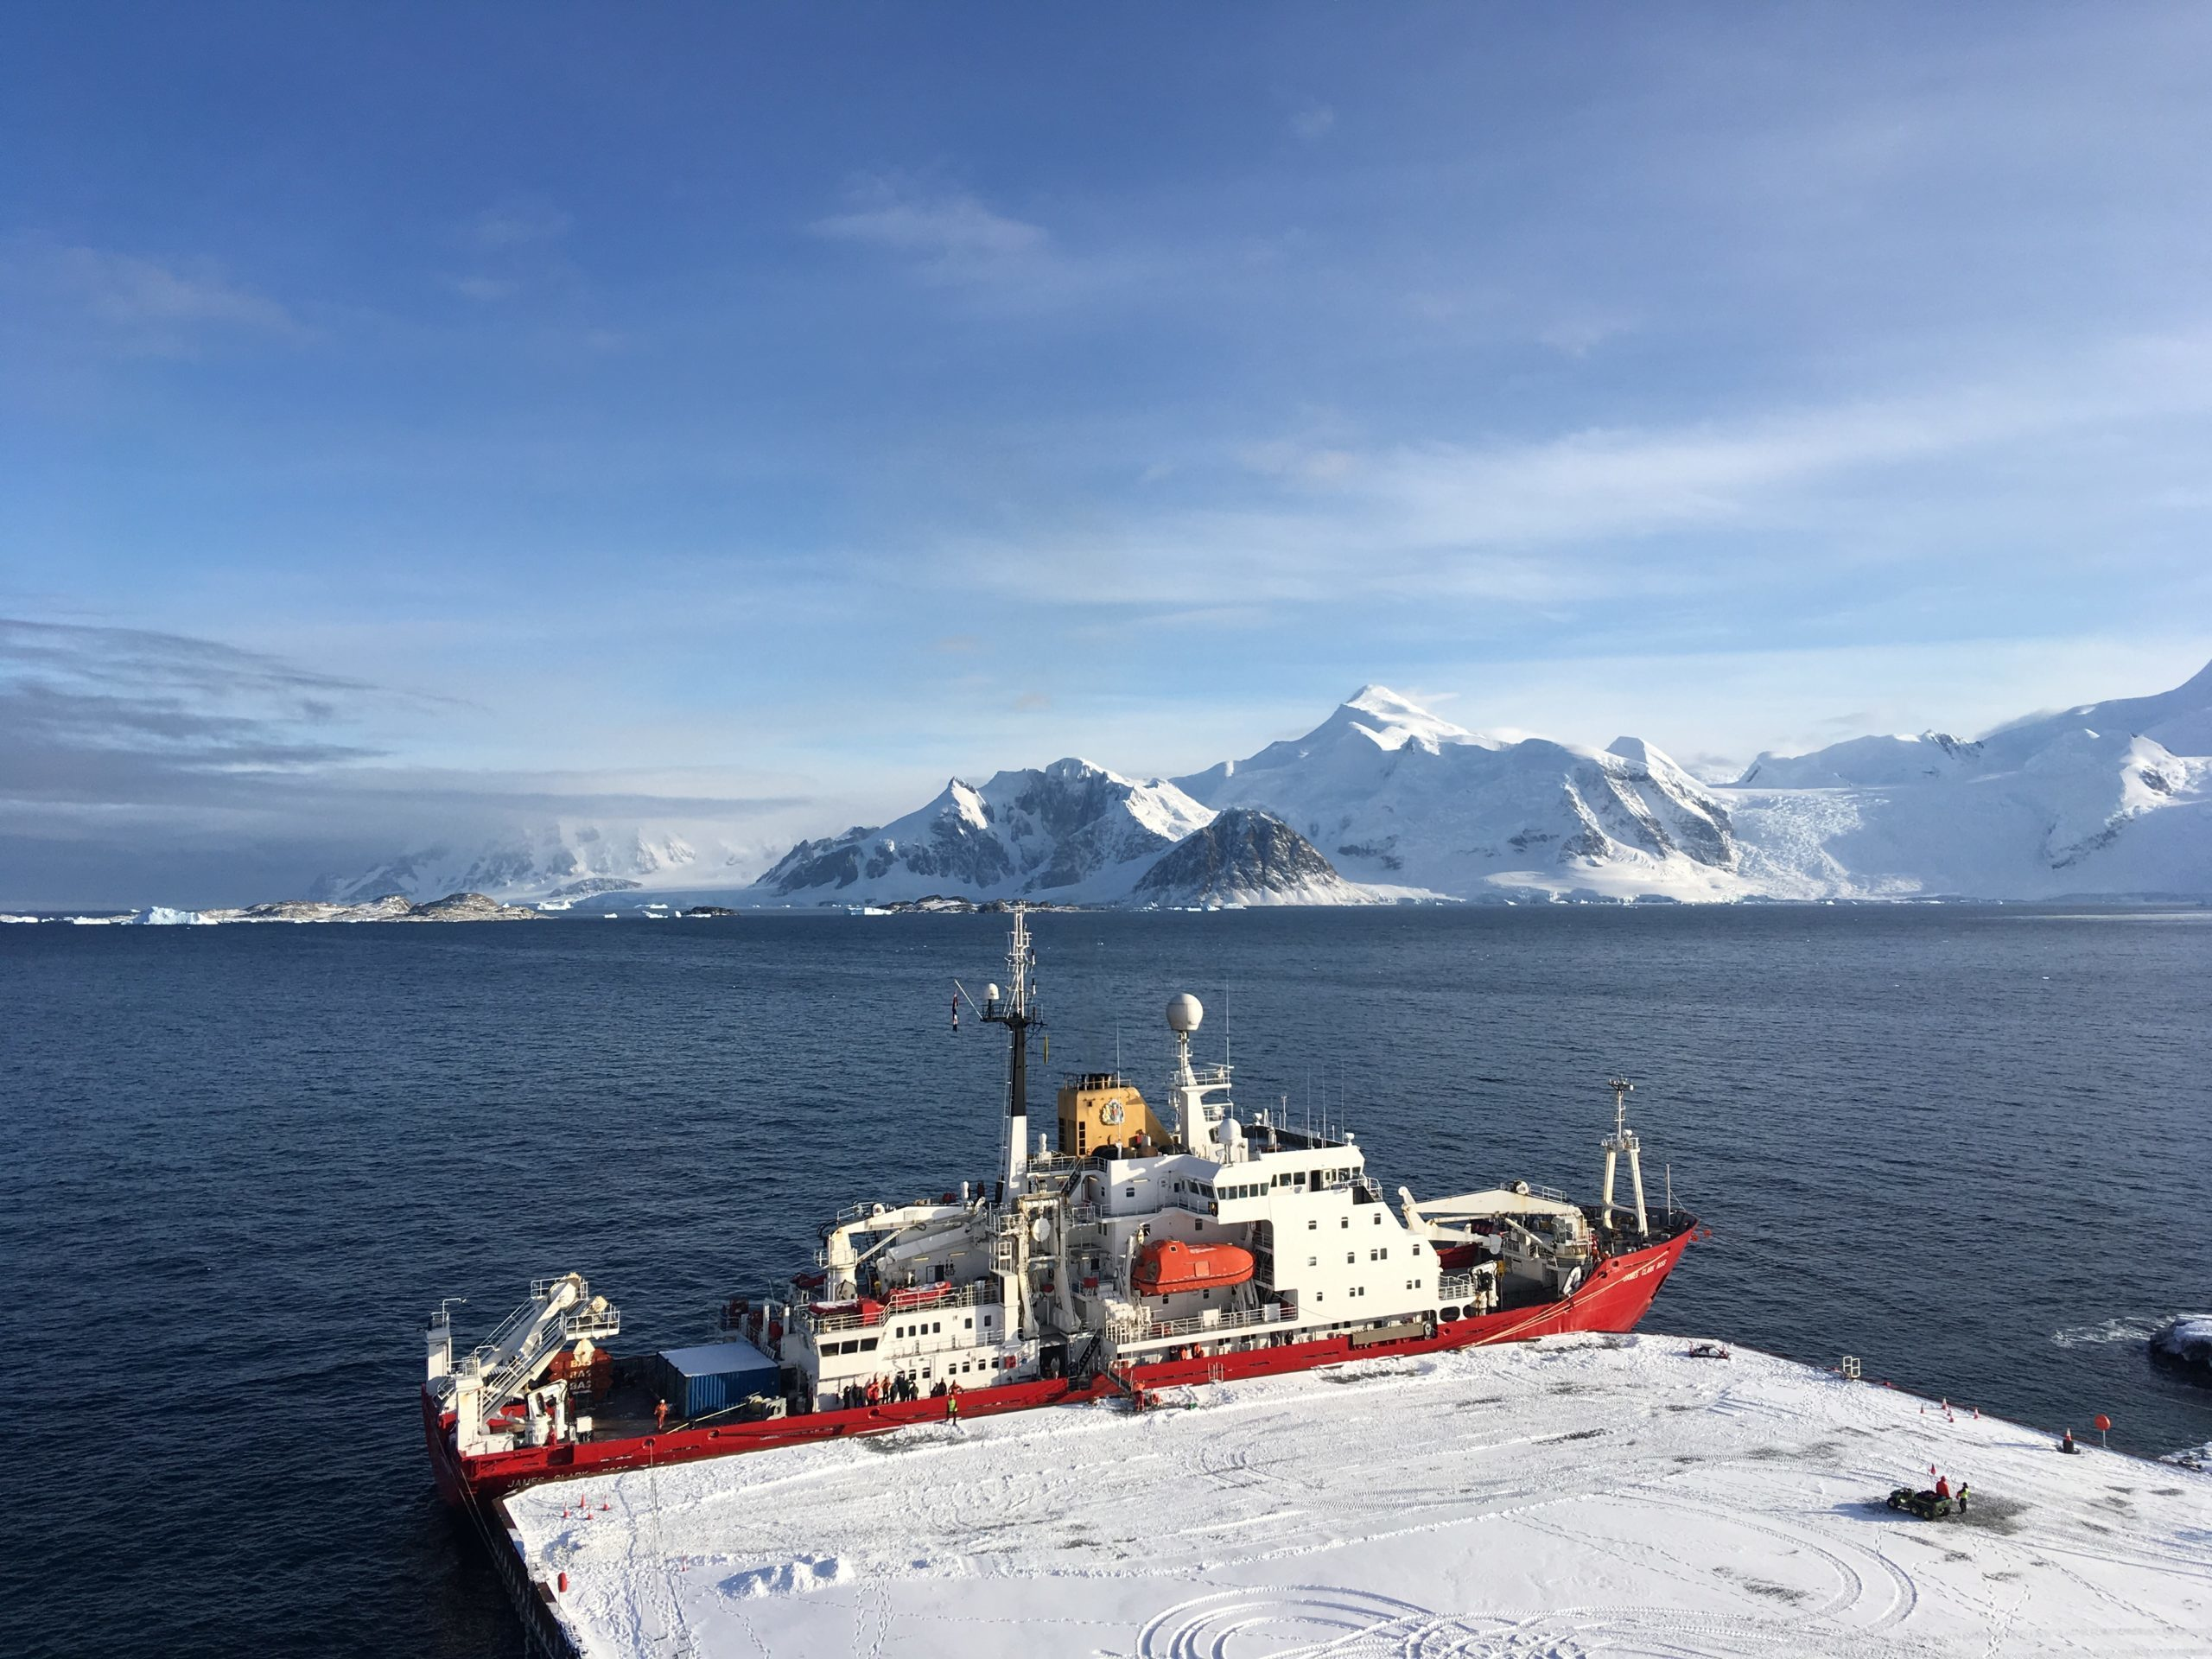 The RRS James Clark Ross ship arrives at the new wharf at Rothera Research Station